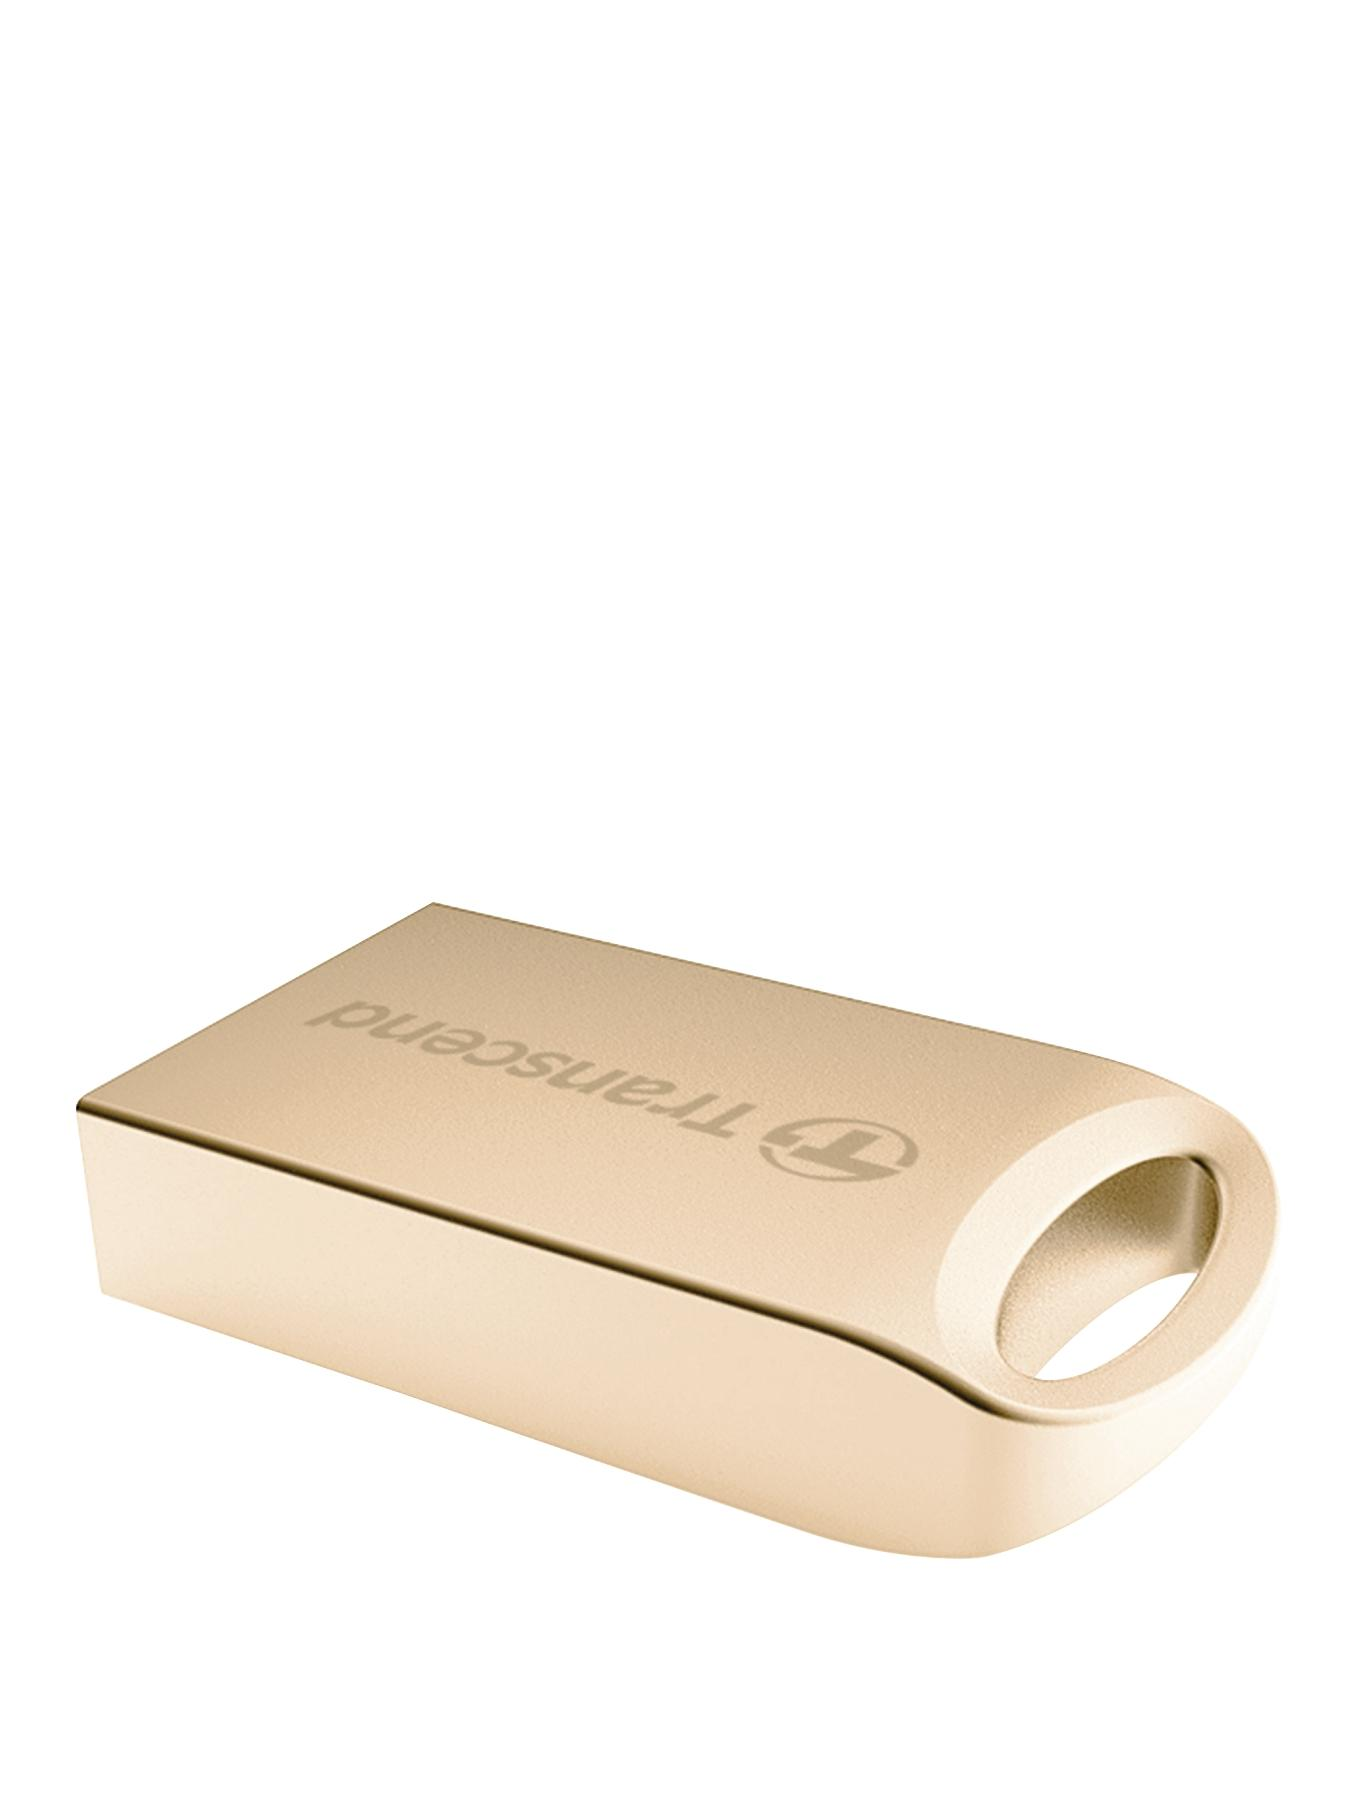 Transcend JetFlash Luxury Series 8Gb USB Flash Drive - Gold Plating